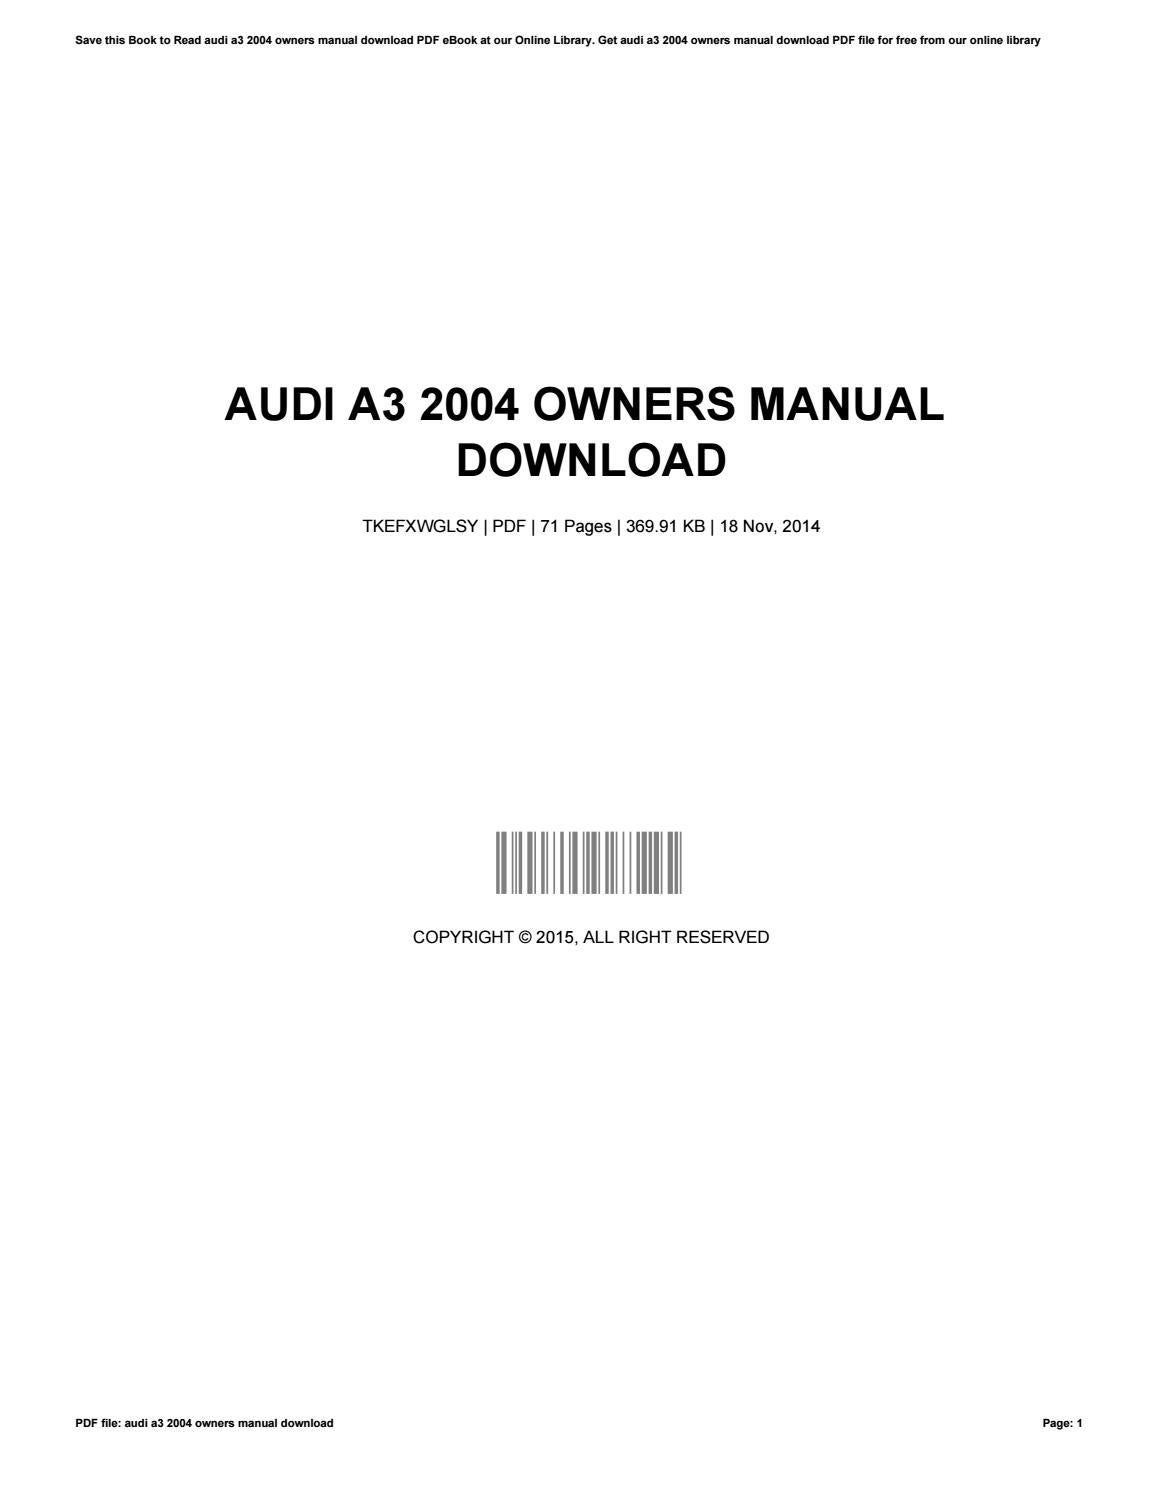 audi a3 owners manual 2015